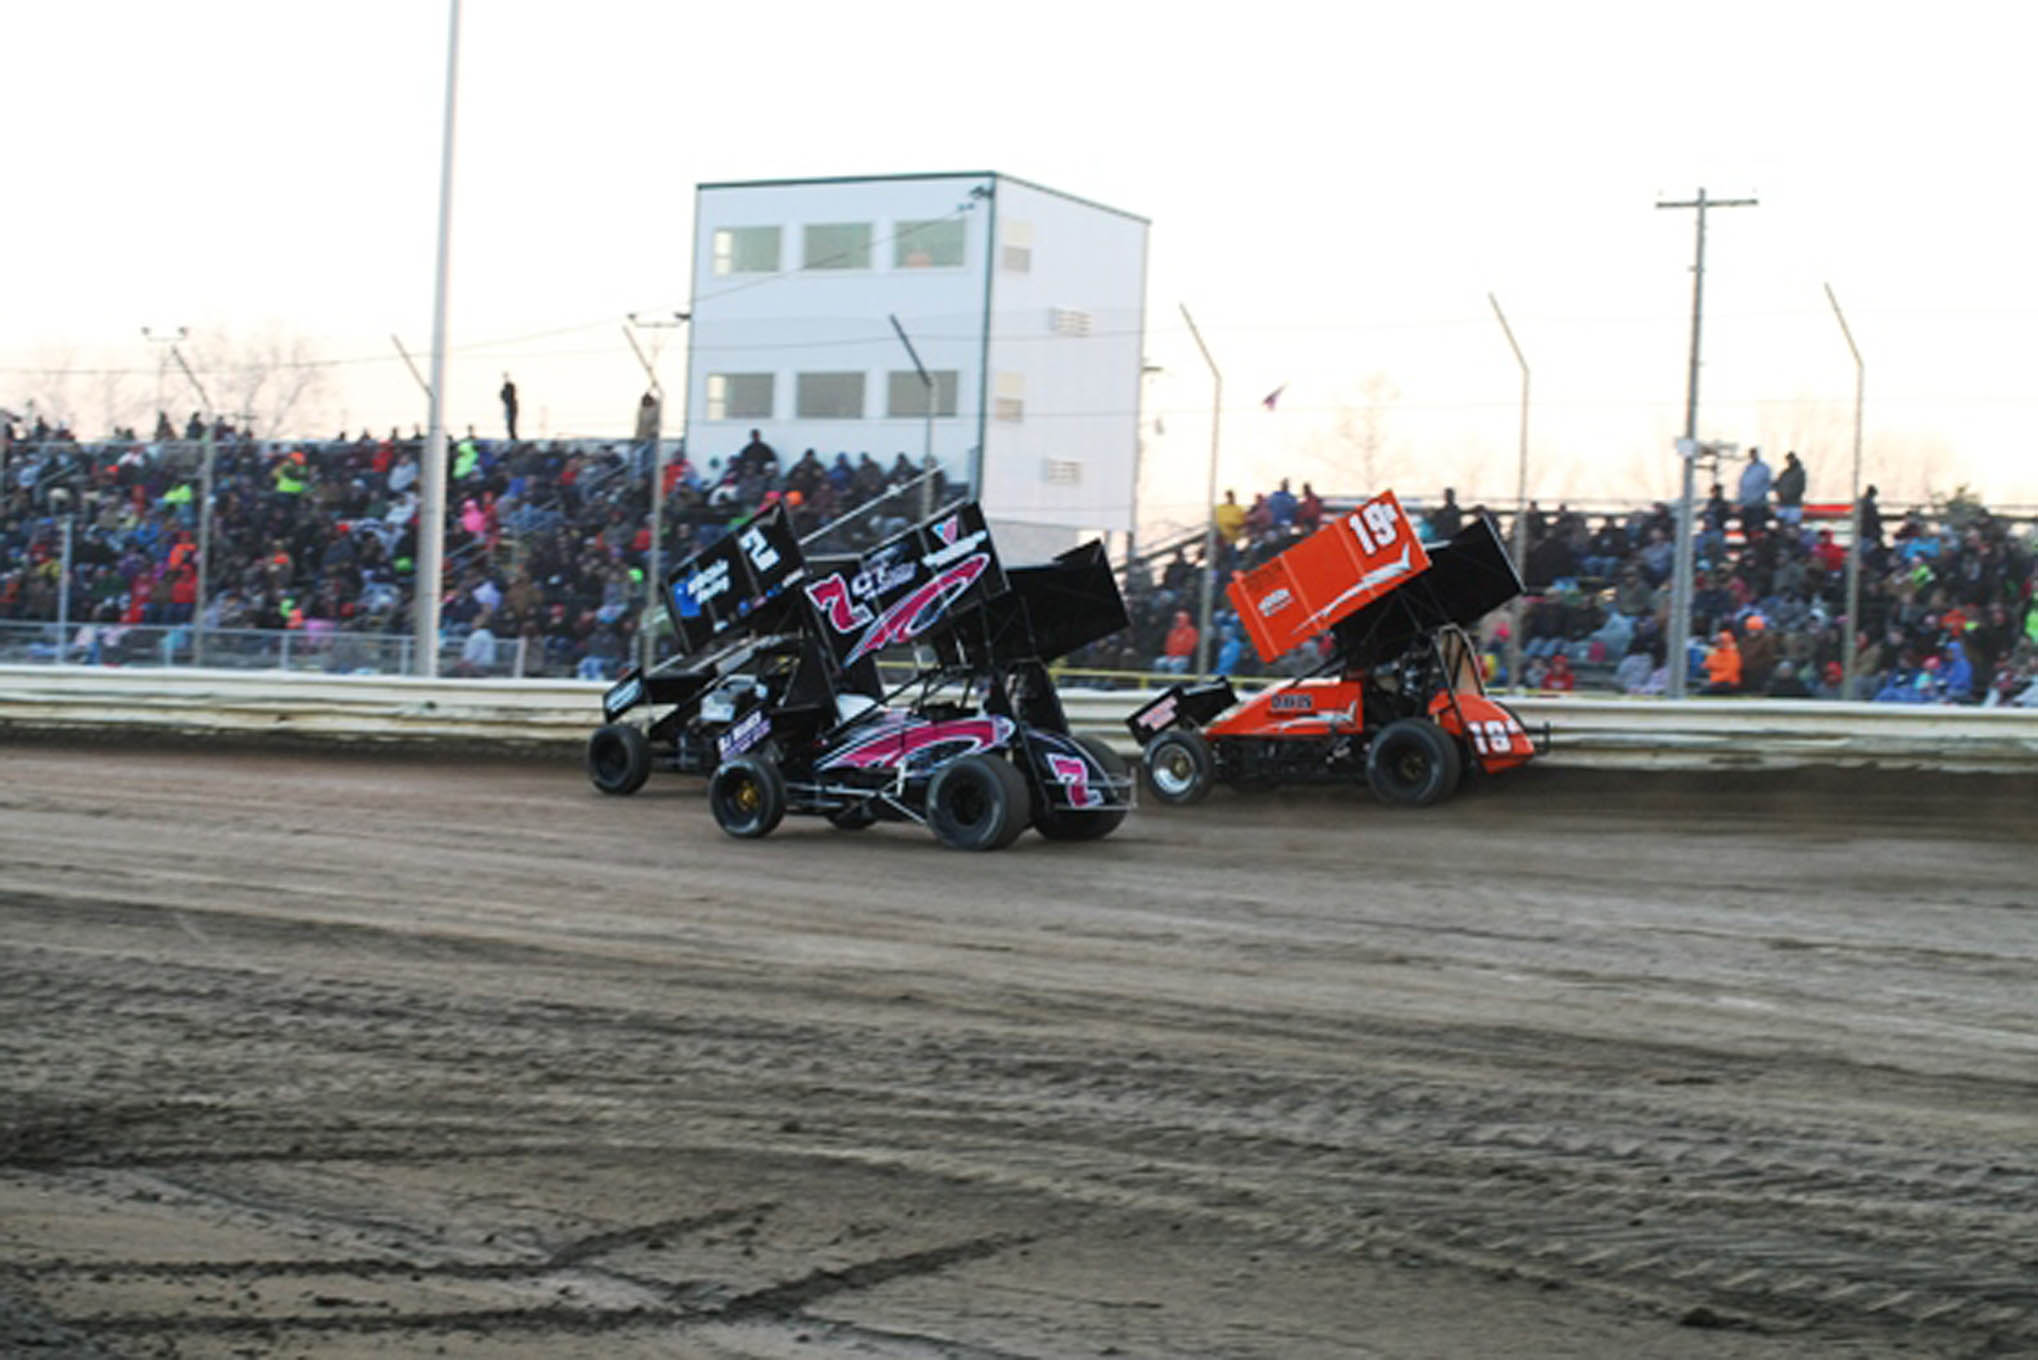 A good crowd was on hand to watch the opener at Attica.